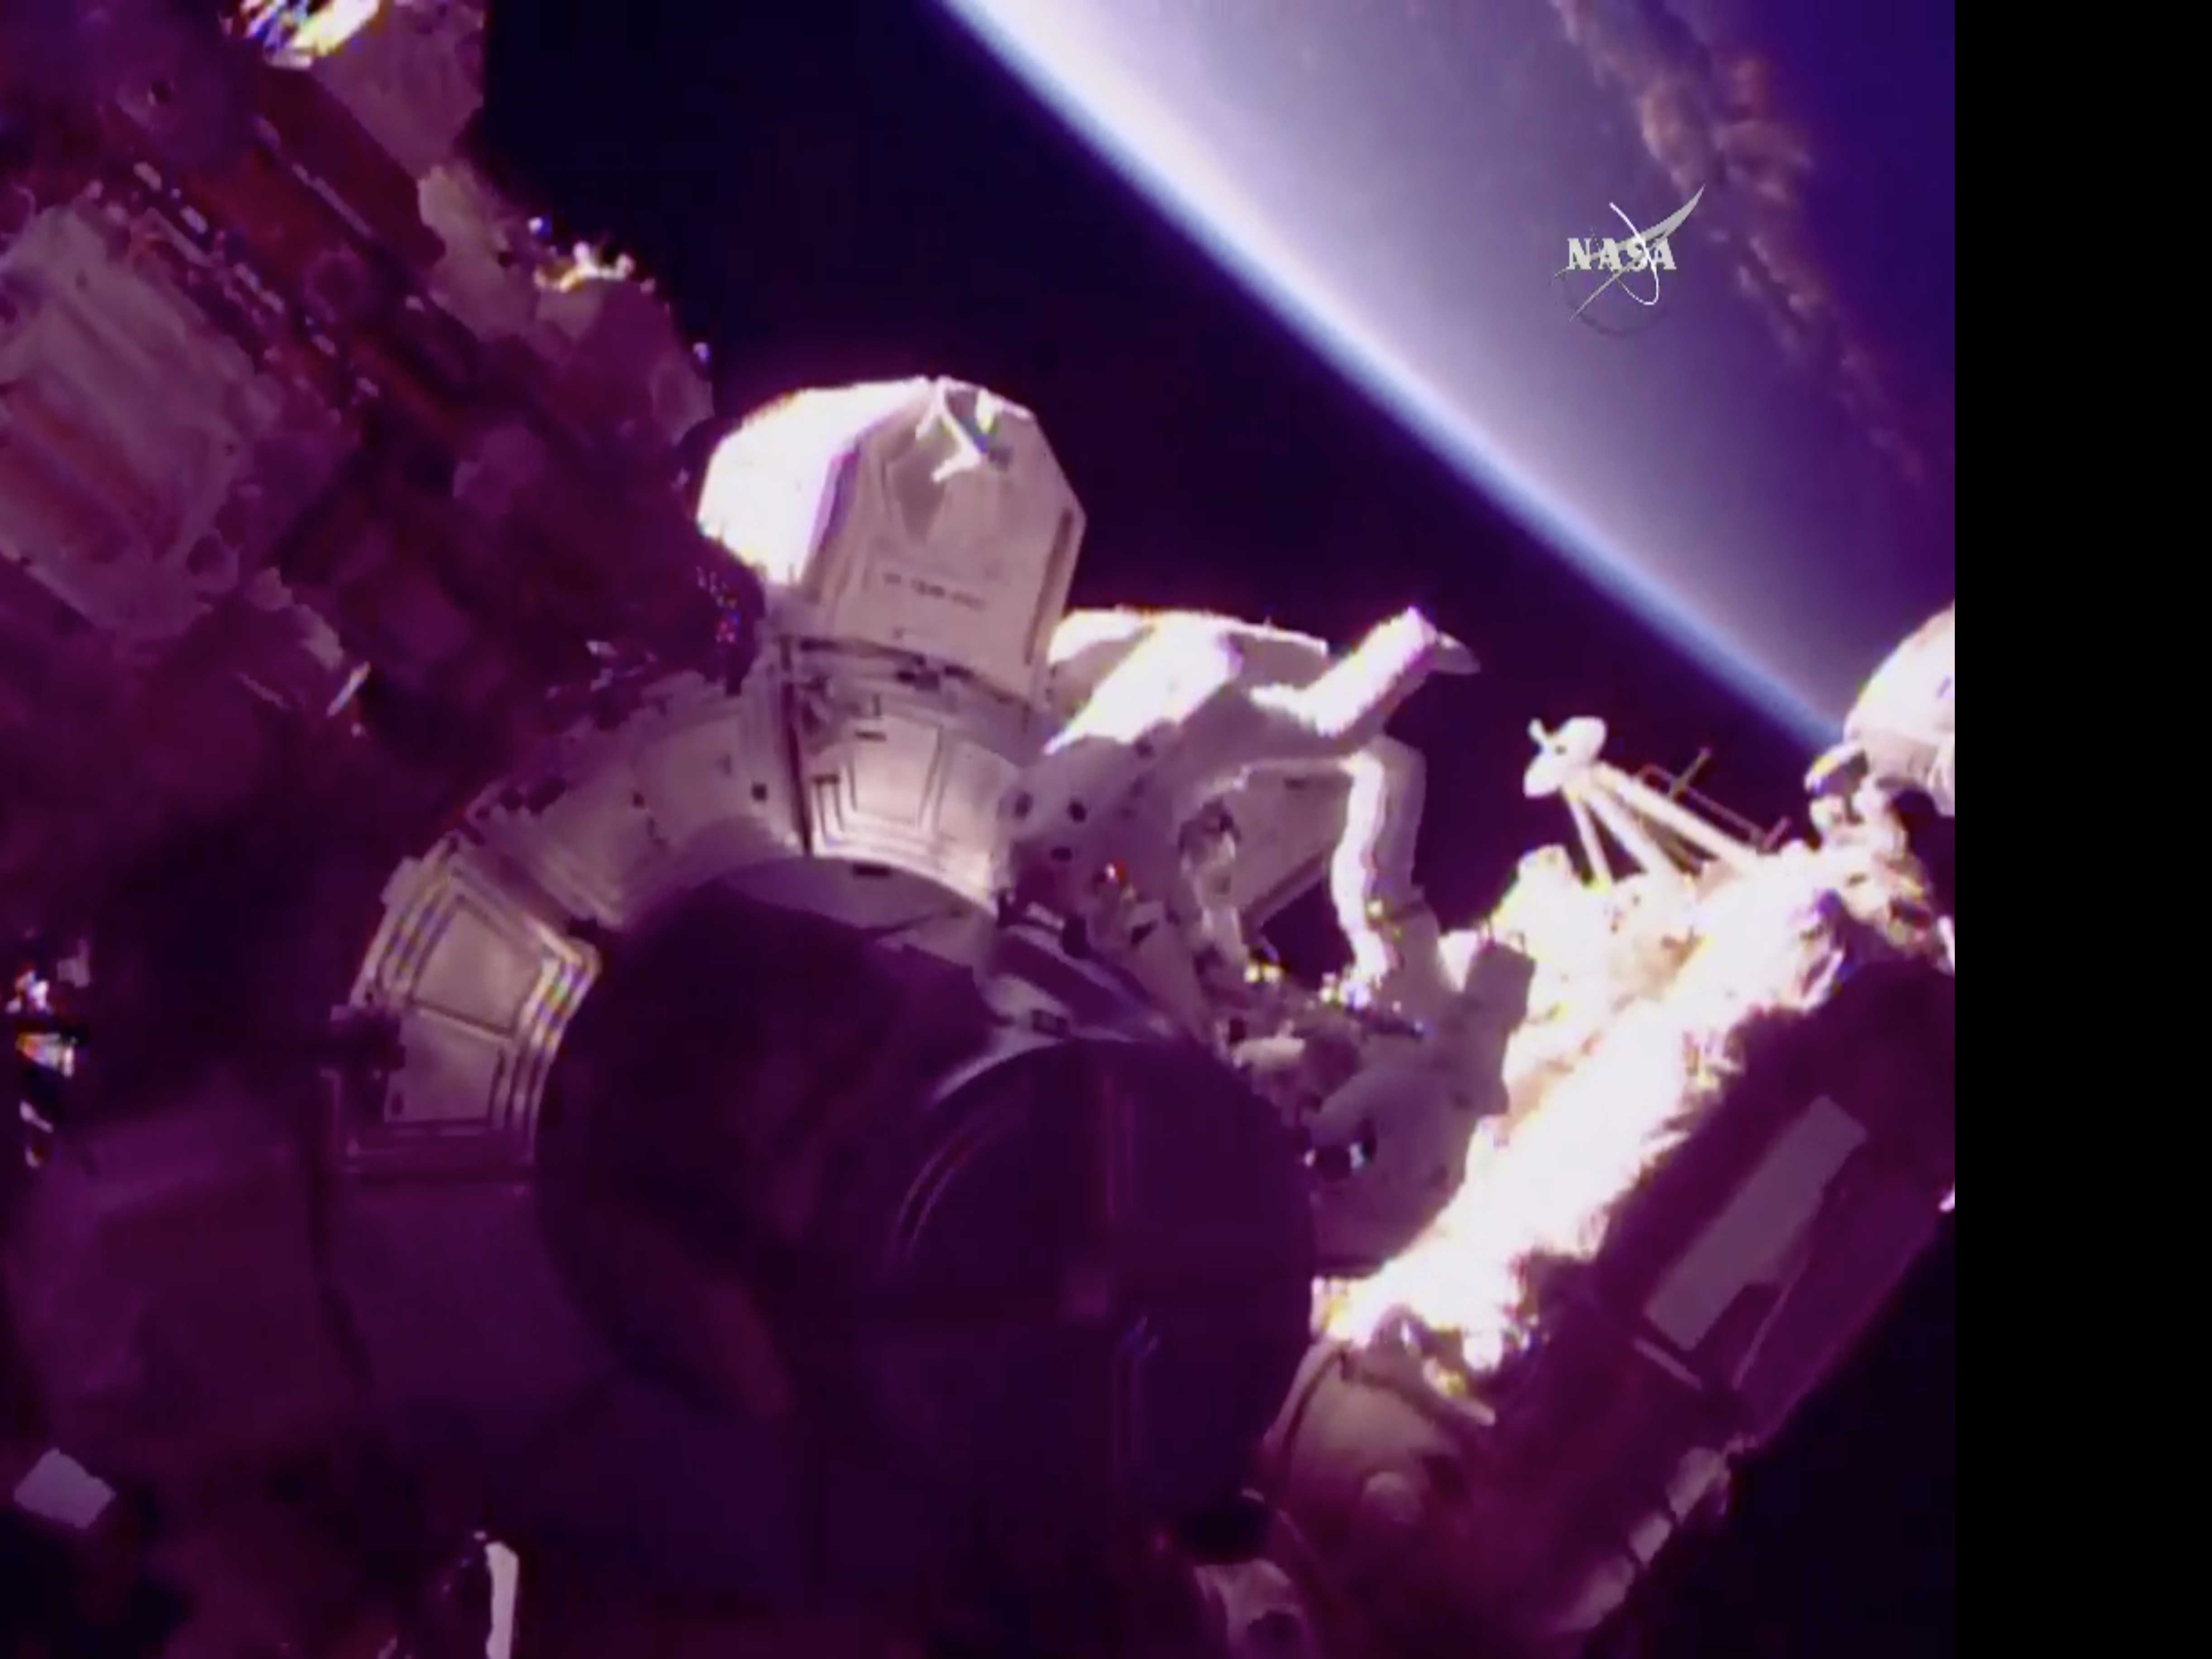 NASA Astronauts Go Spacewalking Days after Reaching Orbit